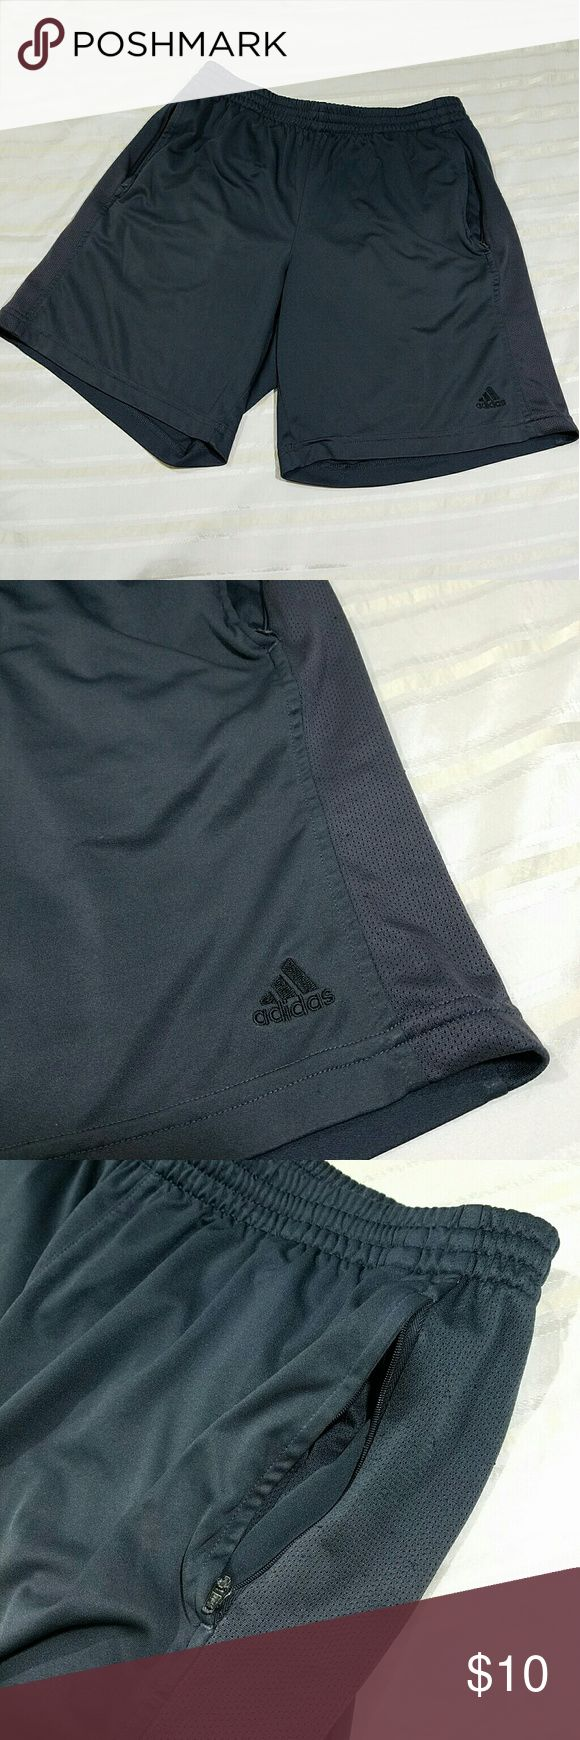 "ADIDAS WORKOUT SHORTS Adidas mens workout shorts. Dark gray mesh material. Has elastic and drawstring band. Black embroidered Adidas logo at bottom of leg.  Is short, mid thigh. Length from top to bottom is 17.5"" has two side pocketsn zippers are stuck and don't work. See photo for detail. Size Medium Adidas Shorts Athletic"